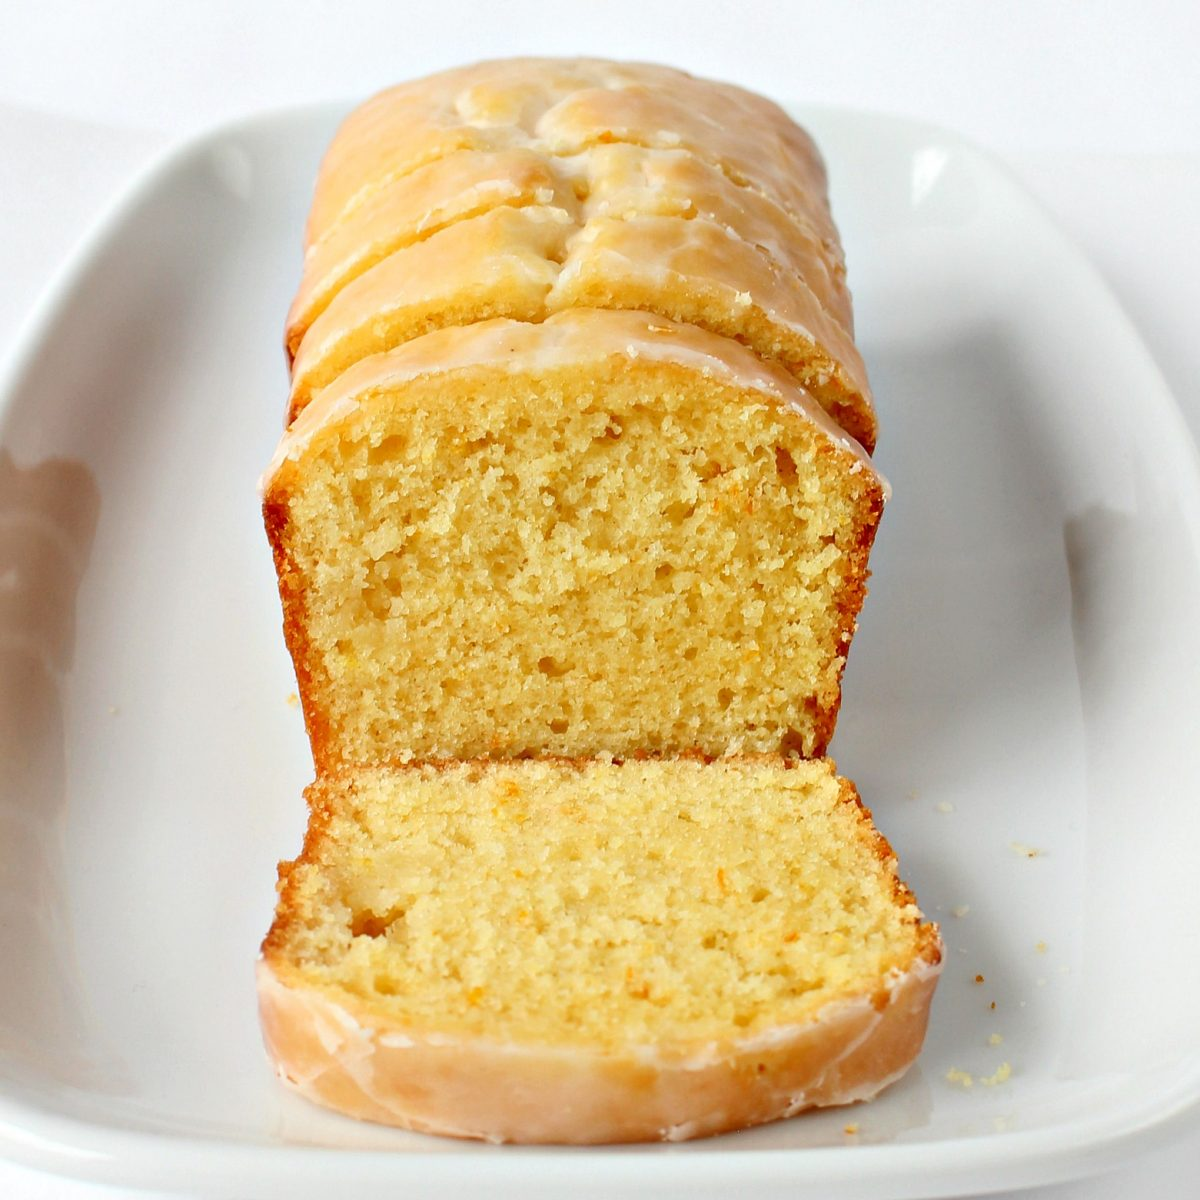 Close up of loaf with lemon yellow slice of cake topped with light yellow lemon glaze .